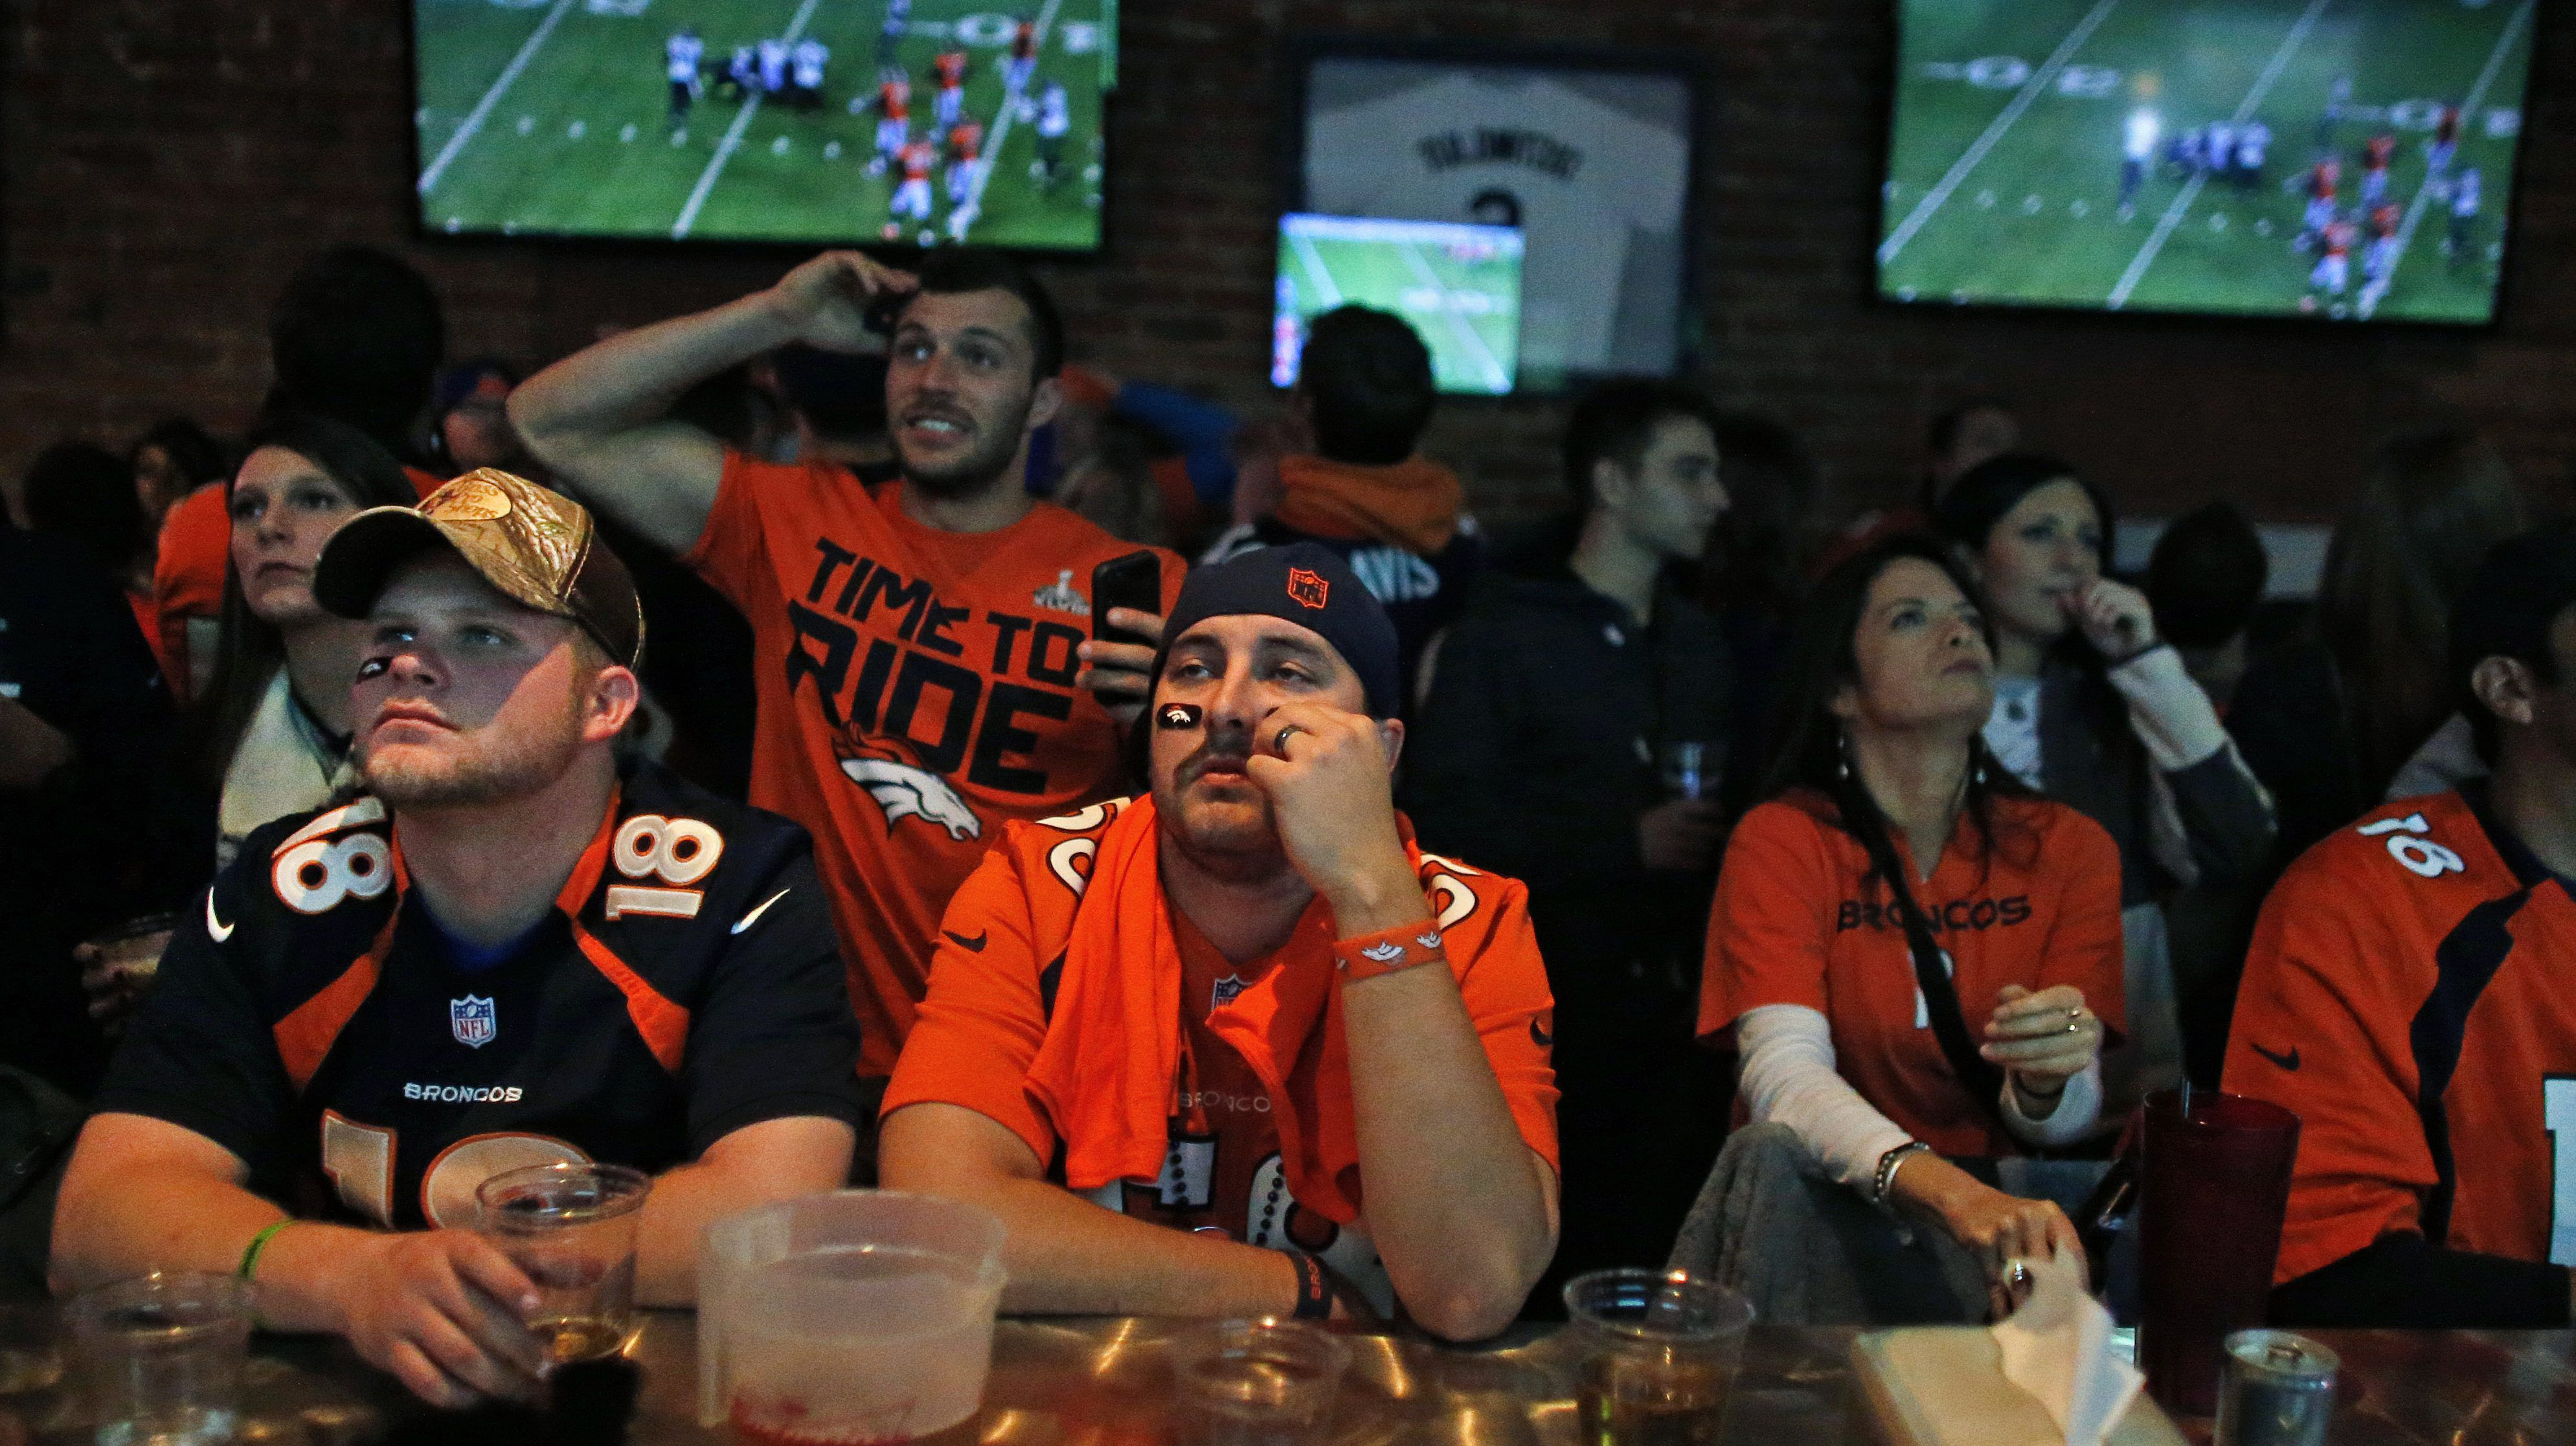 "FILE - In this Feb. 2, 2014 file photo, Denver Broncos fans watch their team play the Seahawks during the first half of the Super Bowl, inside Jackson's, a sports bar and grill in Denver. Senators from both parties warned the National Football League Thursday to get rid of a 4-decade-old TV ""blackout"" rule or risk congressional action to restrict the league's lucrative antitrust exemption, which allows NFL teams to negotiate radio and television broadcast rights together.  (AP Photo/Brennan Linsley, File)"